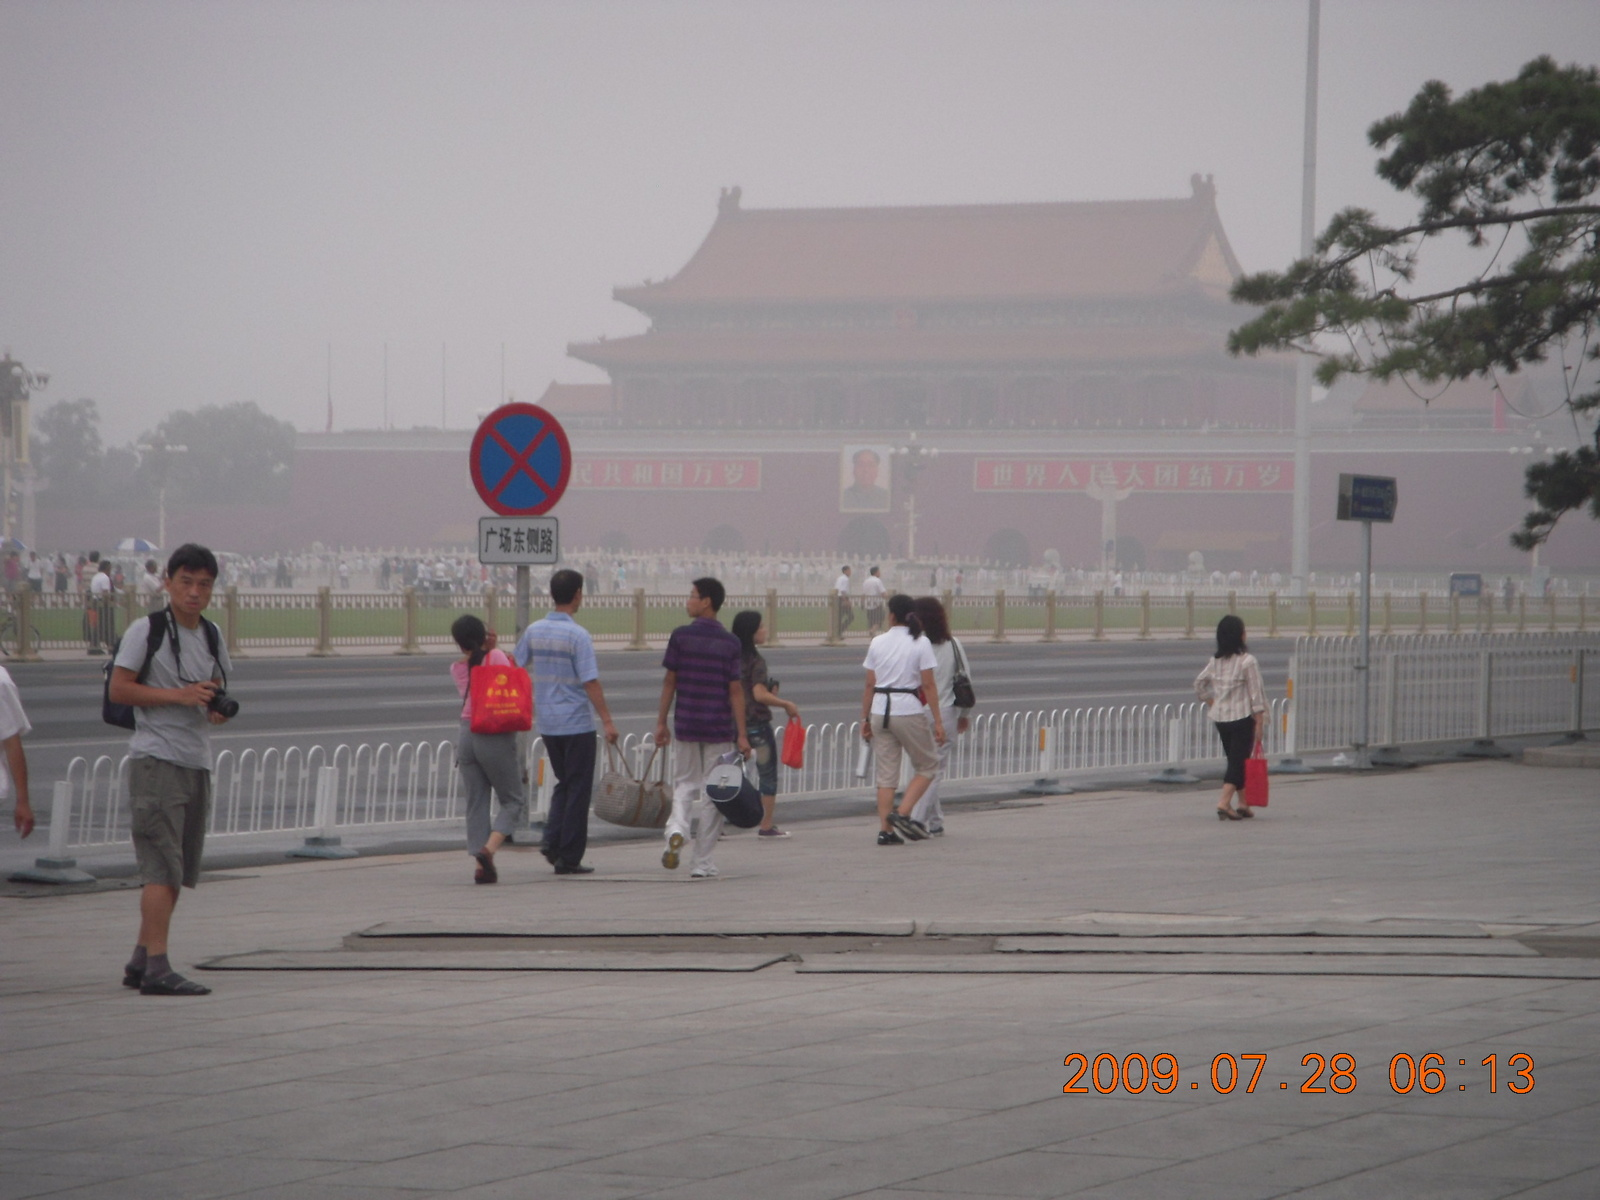 China eclipse - Beijing morning run - Tiananmen Square